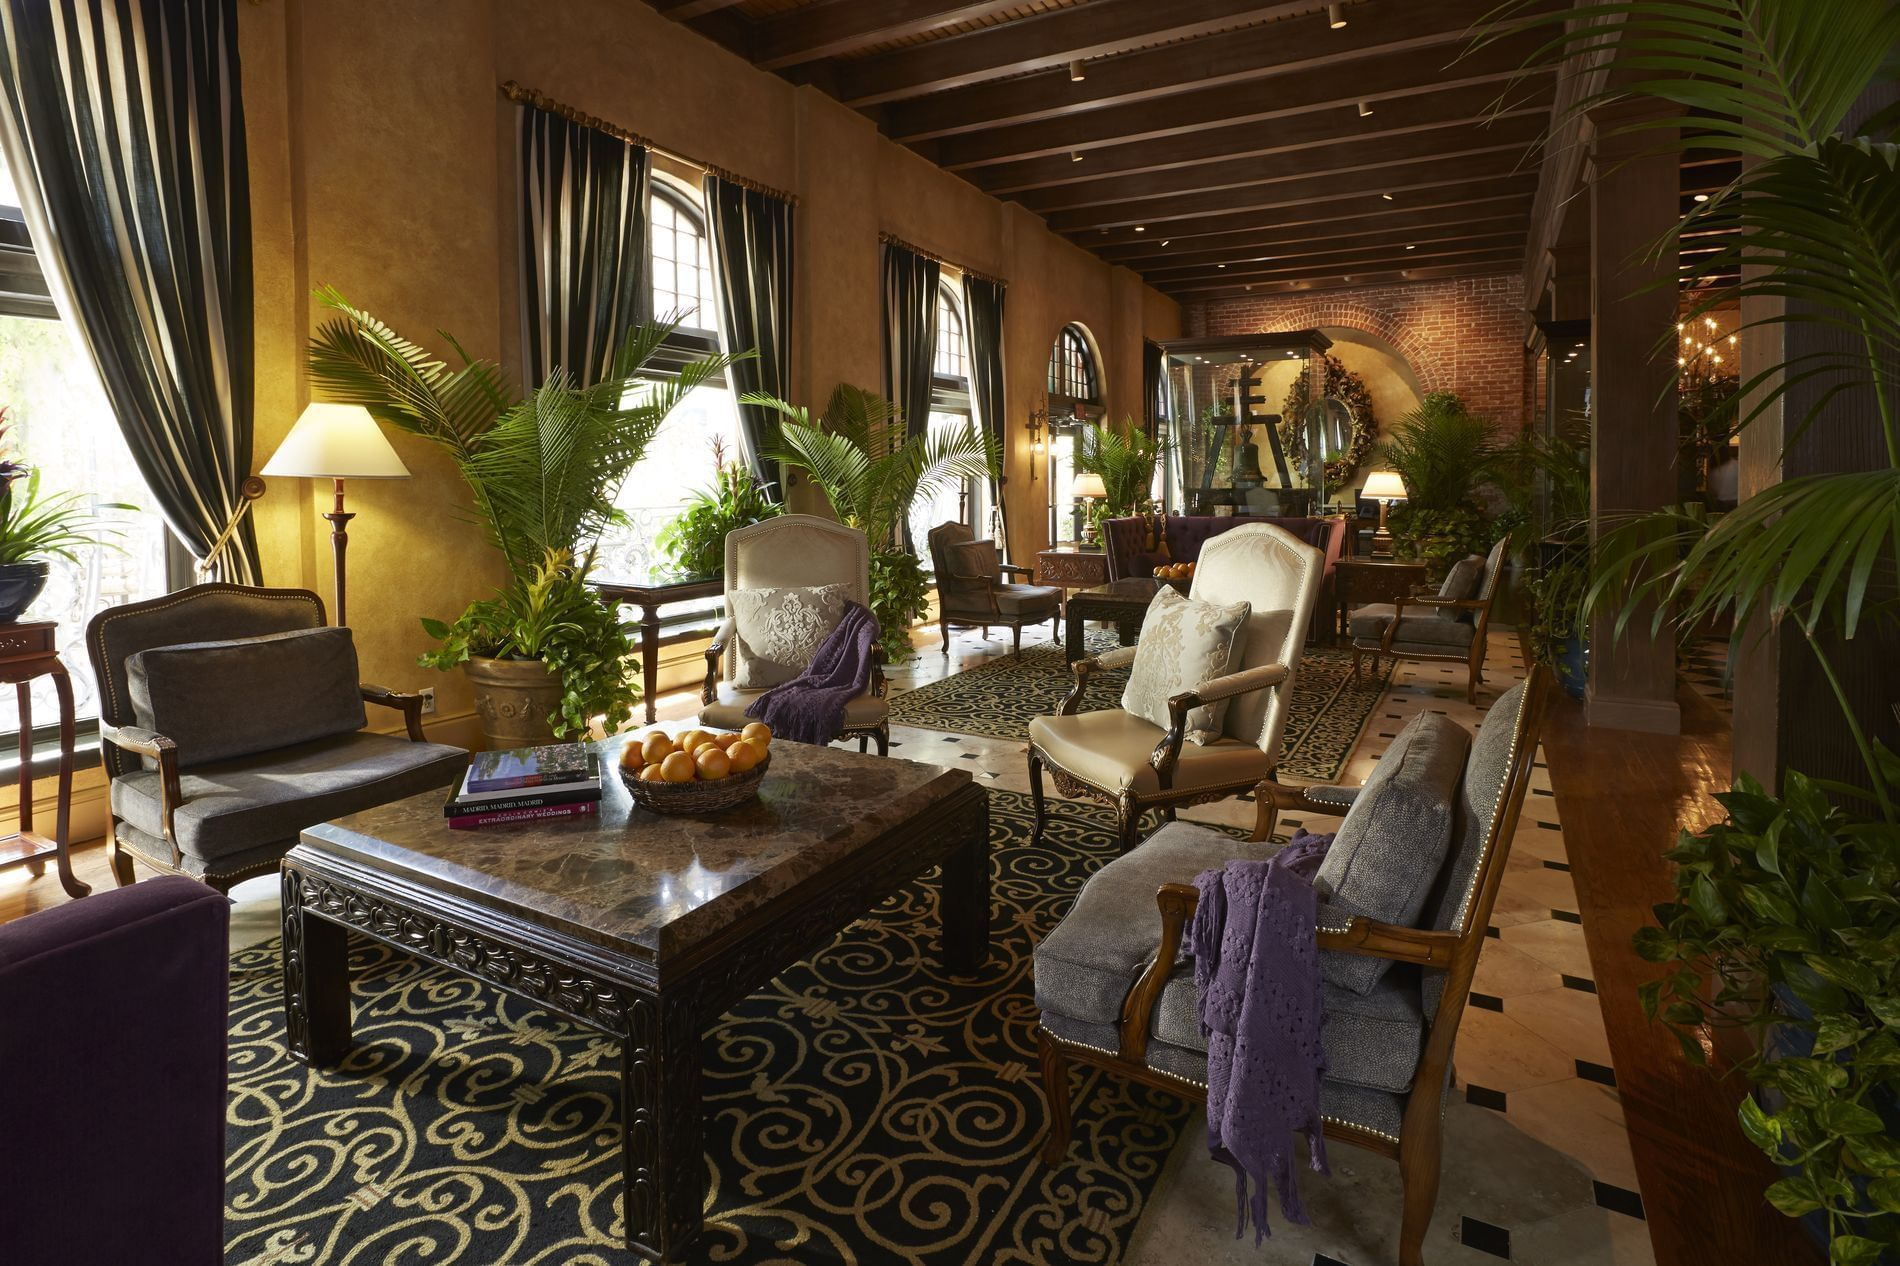 Mission Inn lobby with seating and coffee tables